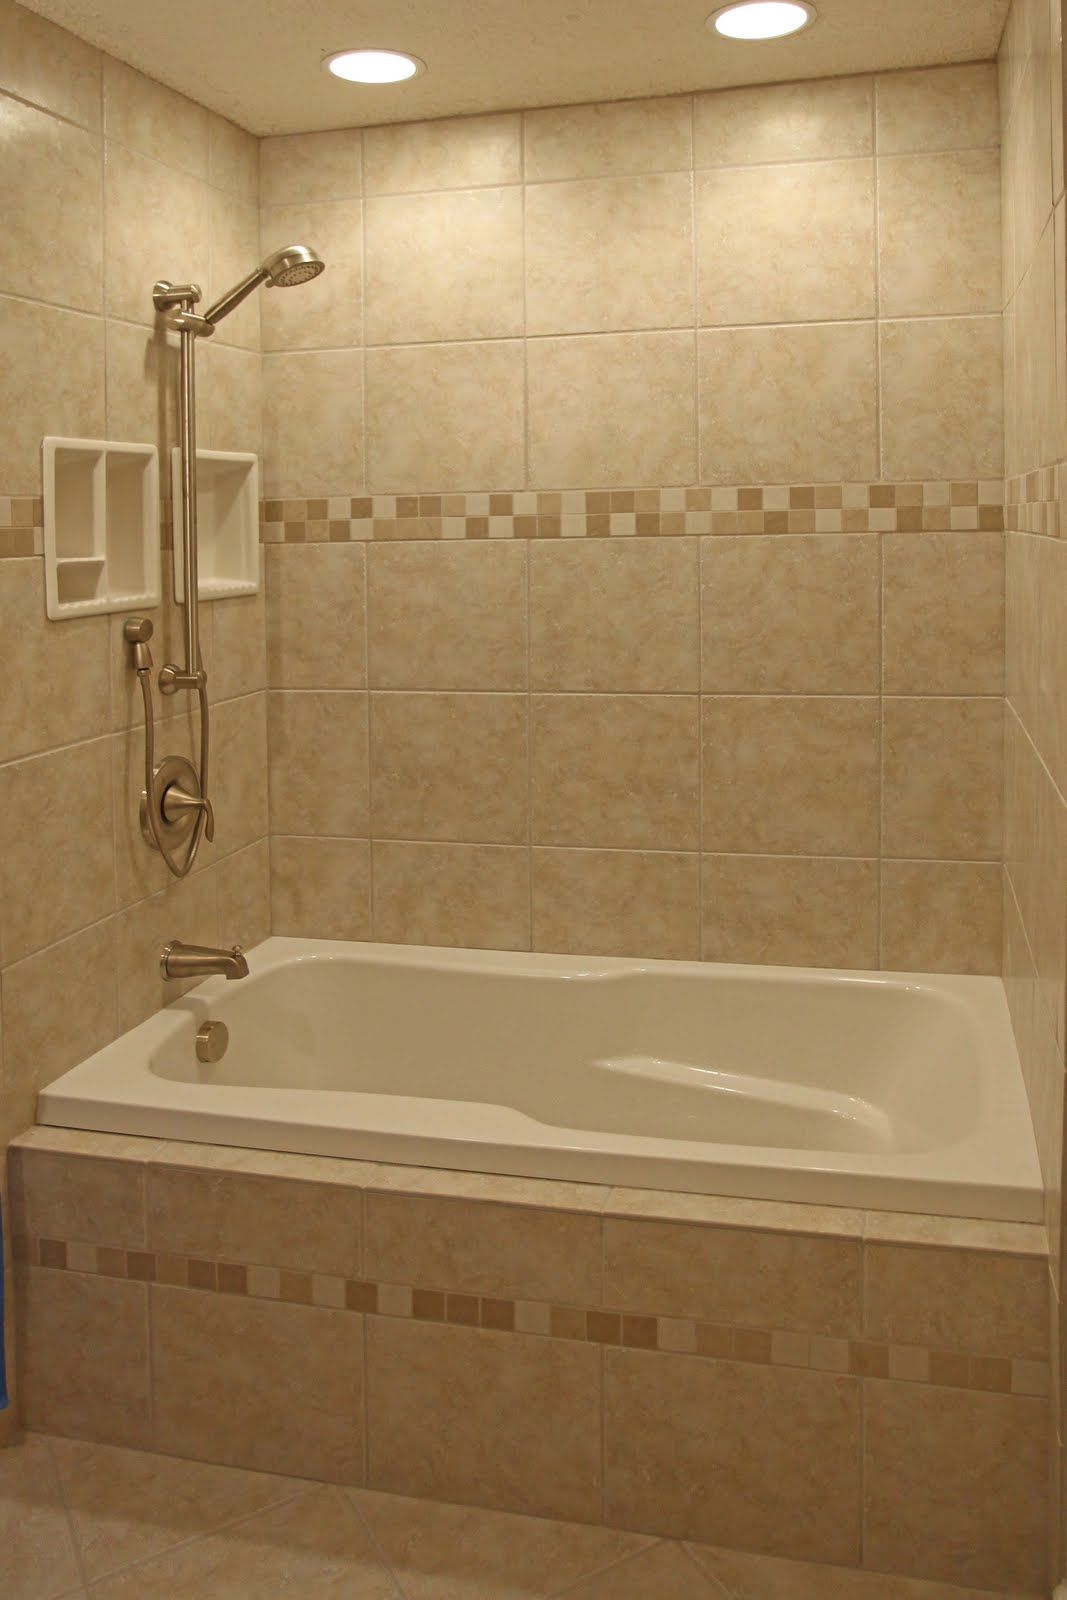 Bathroom tub and shower designs - Shower And Bath Remodel Bathroom Shower Design Ideas Ceramic Tile Bathroom Shower Design